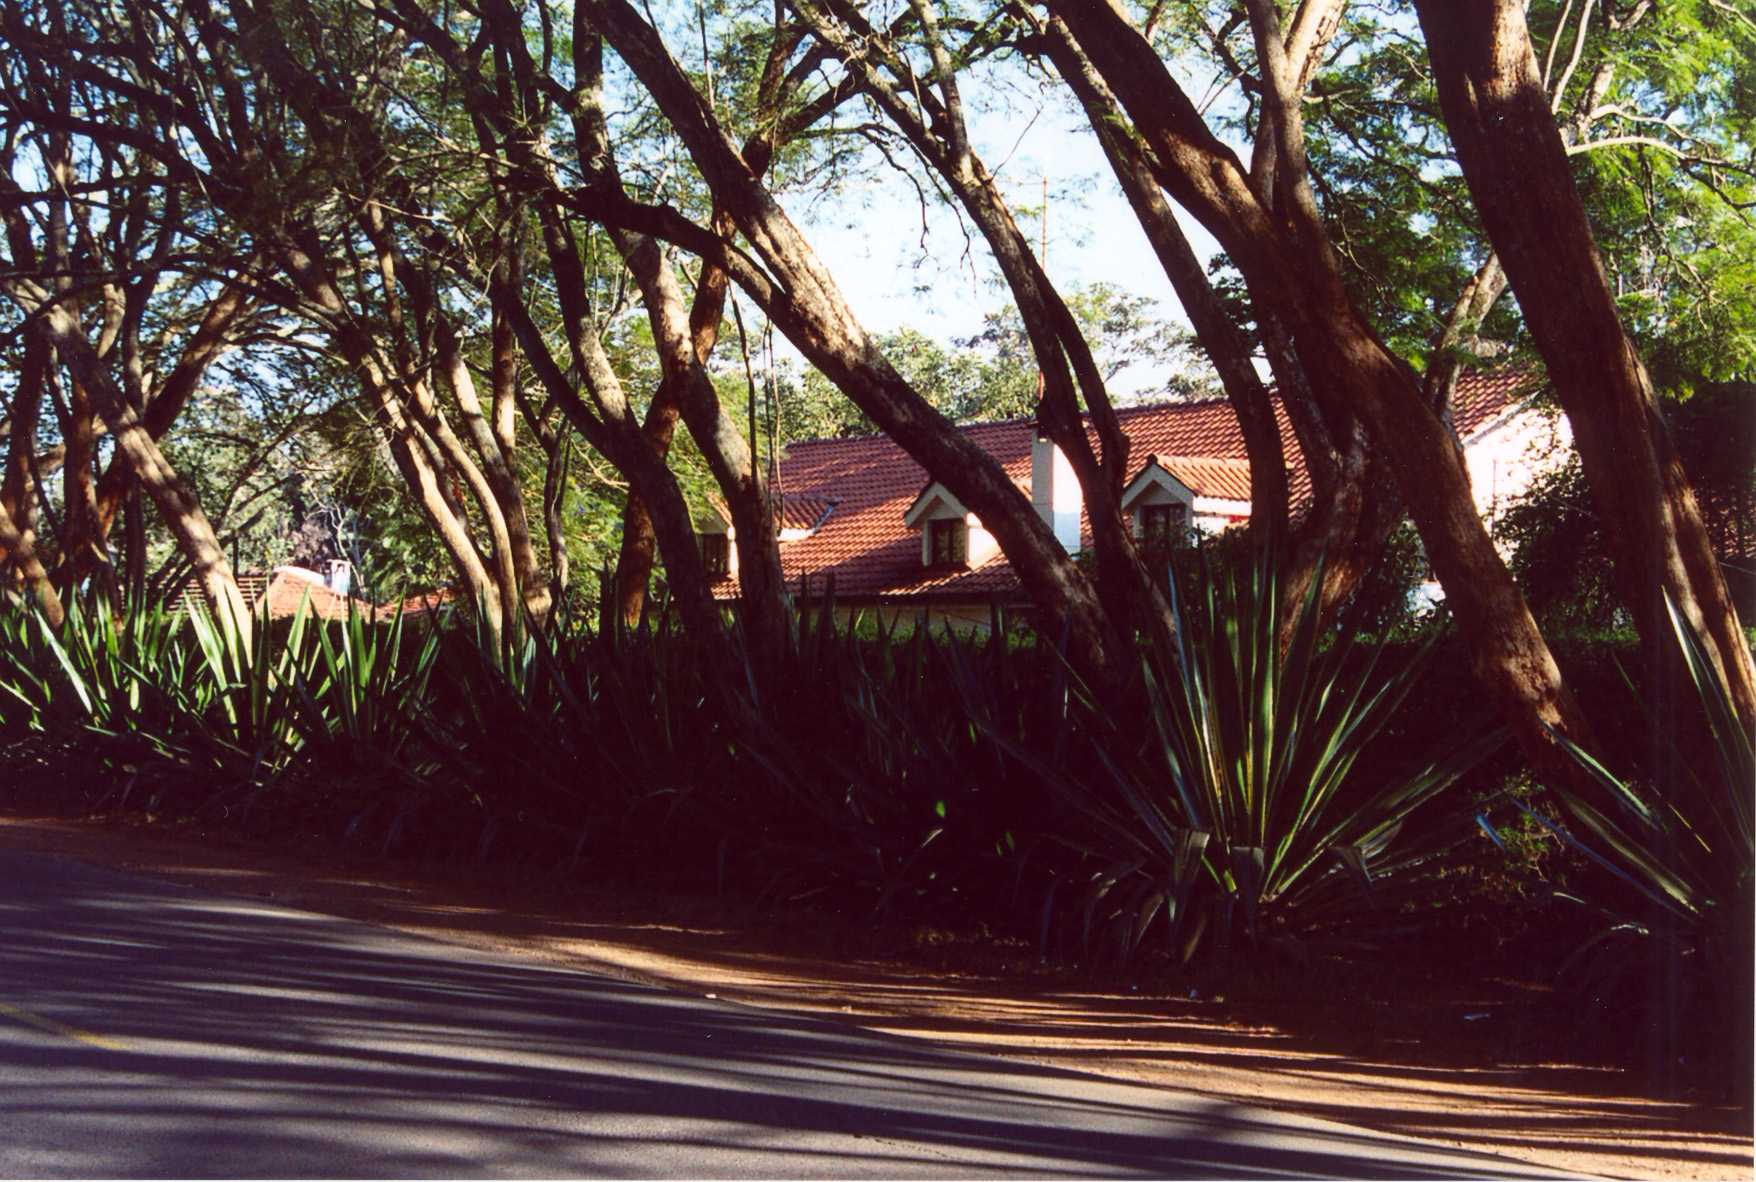 Riverside - Nice house behind plant wall (July 2003)